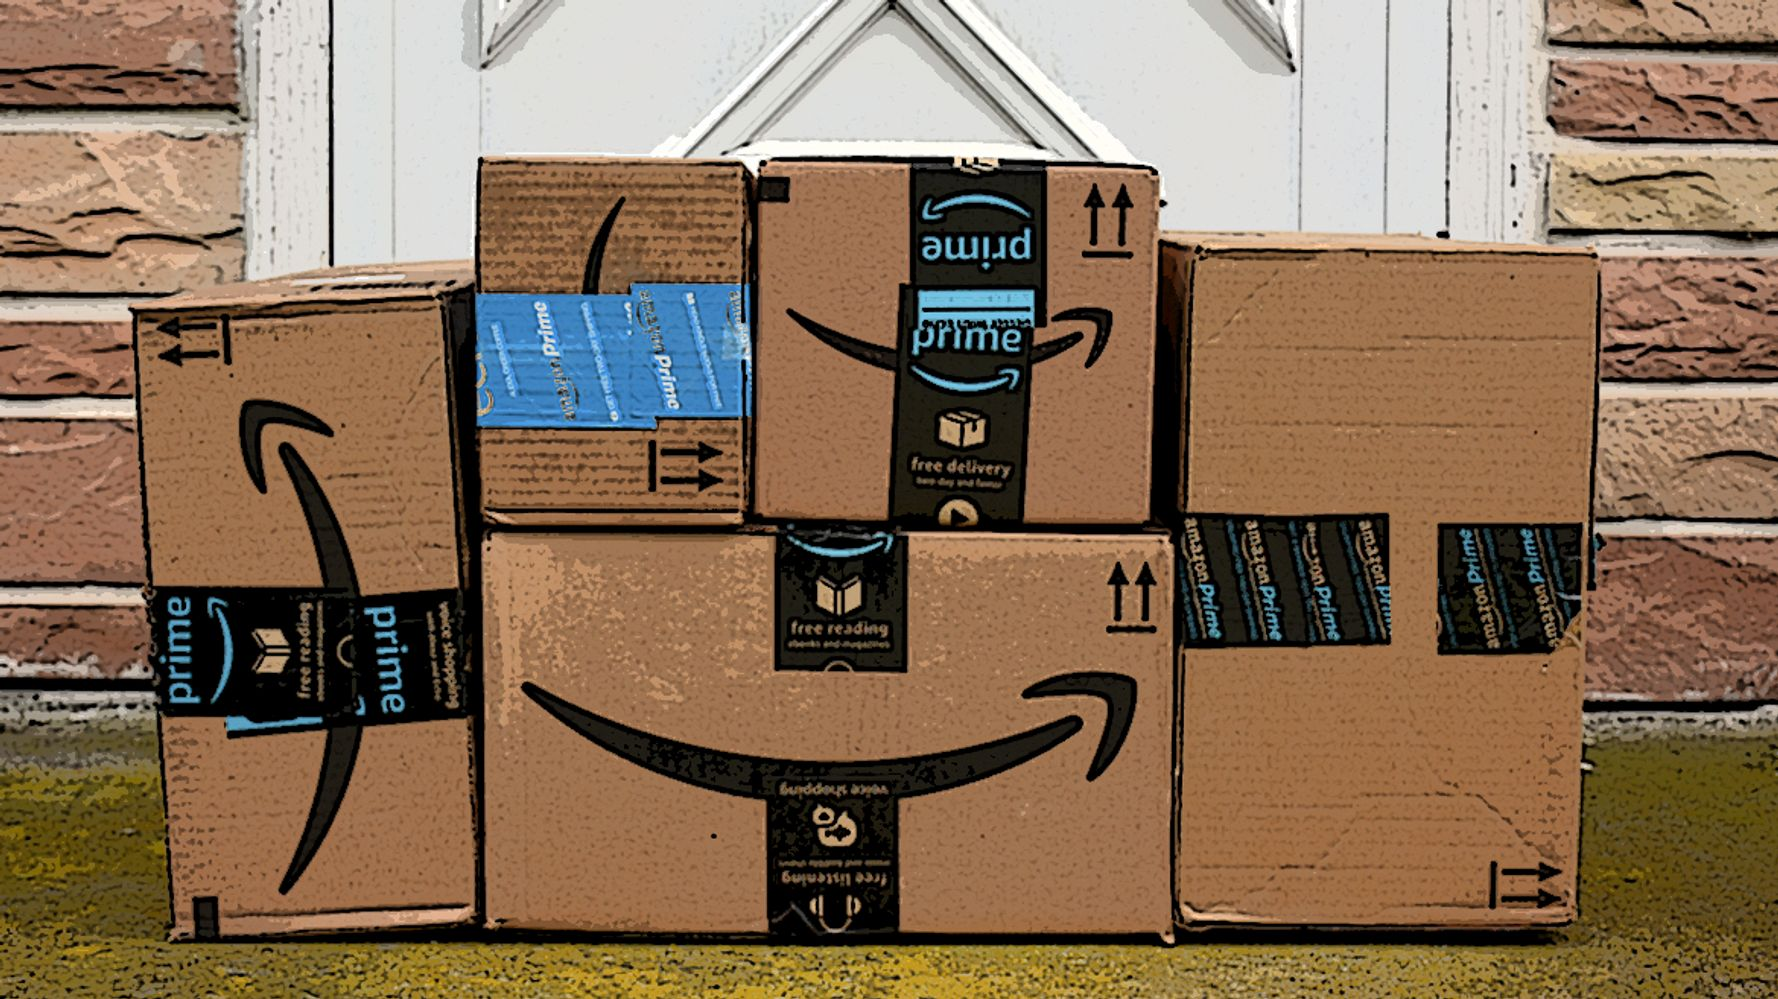 Amazon Prime Day 2019: Do You Need To Be A Prime Member To Get The Deals?